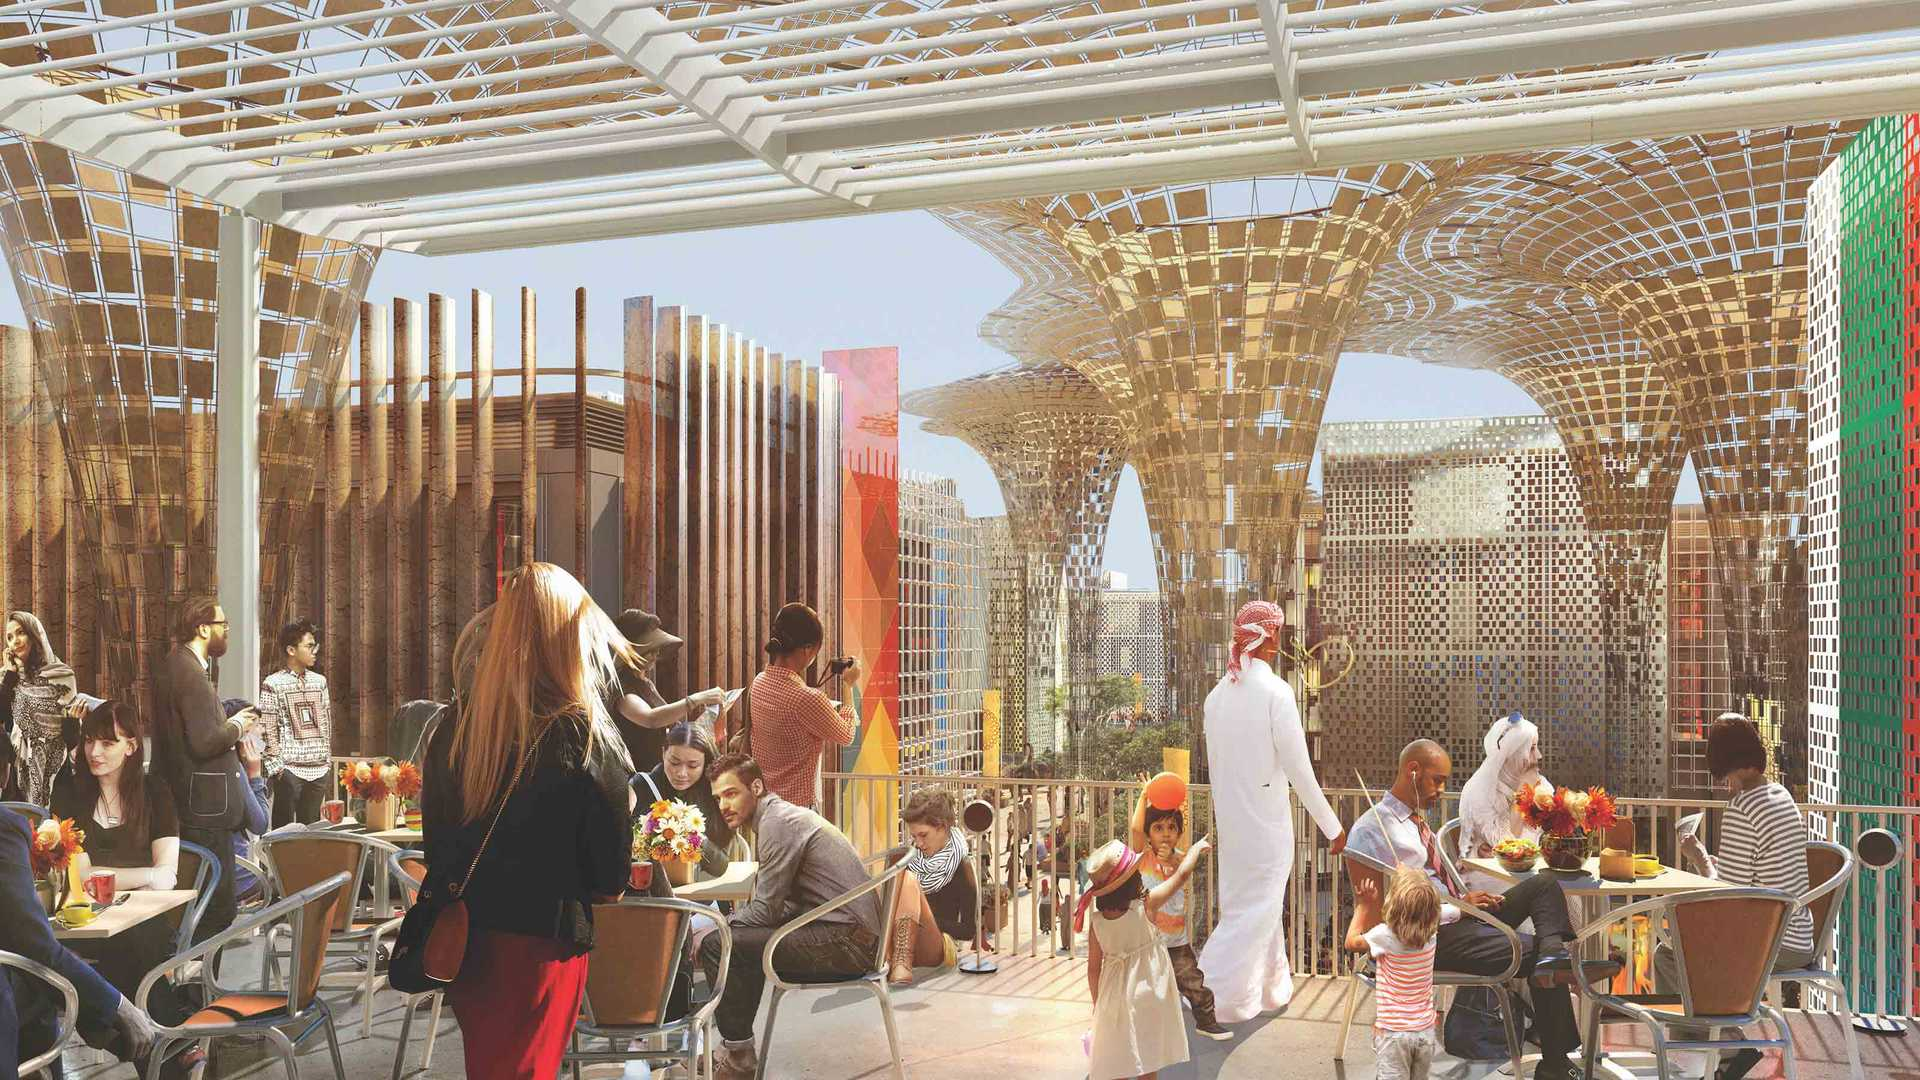 EXPO2020 Buildingterrace